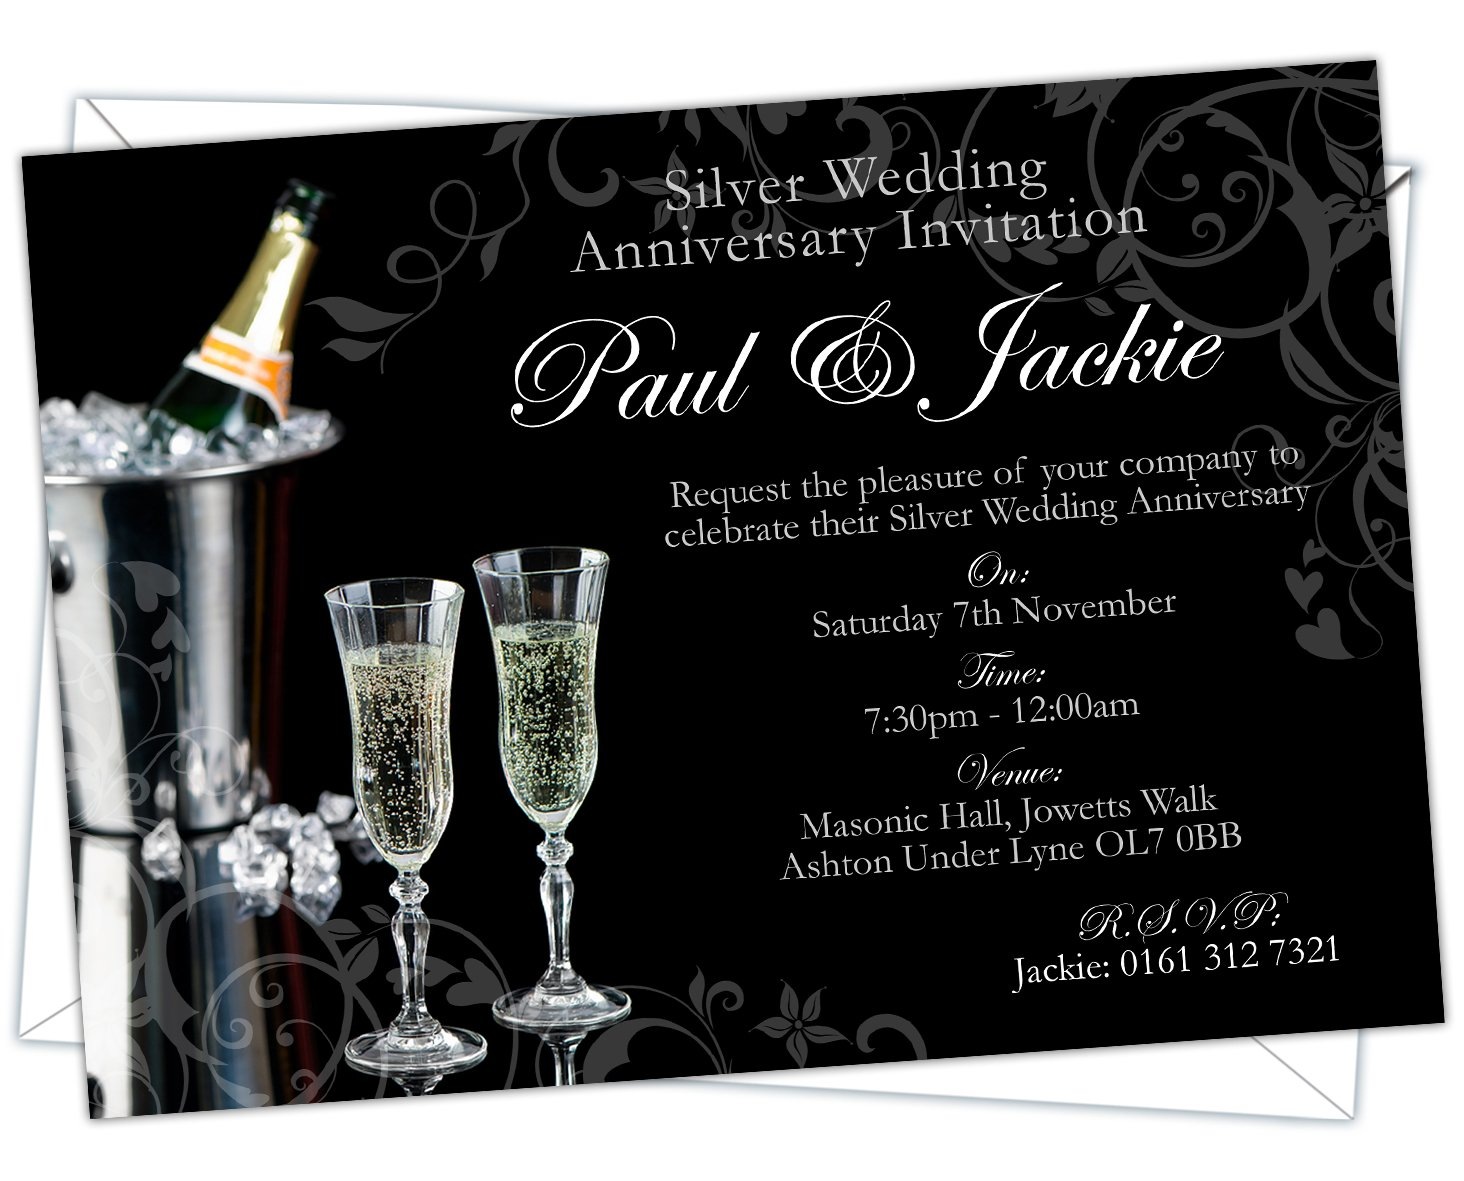 Personalised Silver Wedding 25th Anniversary Invitations Design Code: SWA 007 Pack of 20